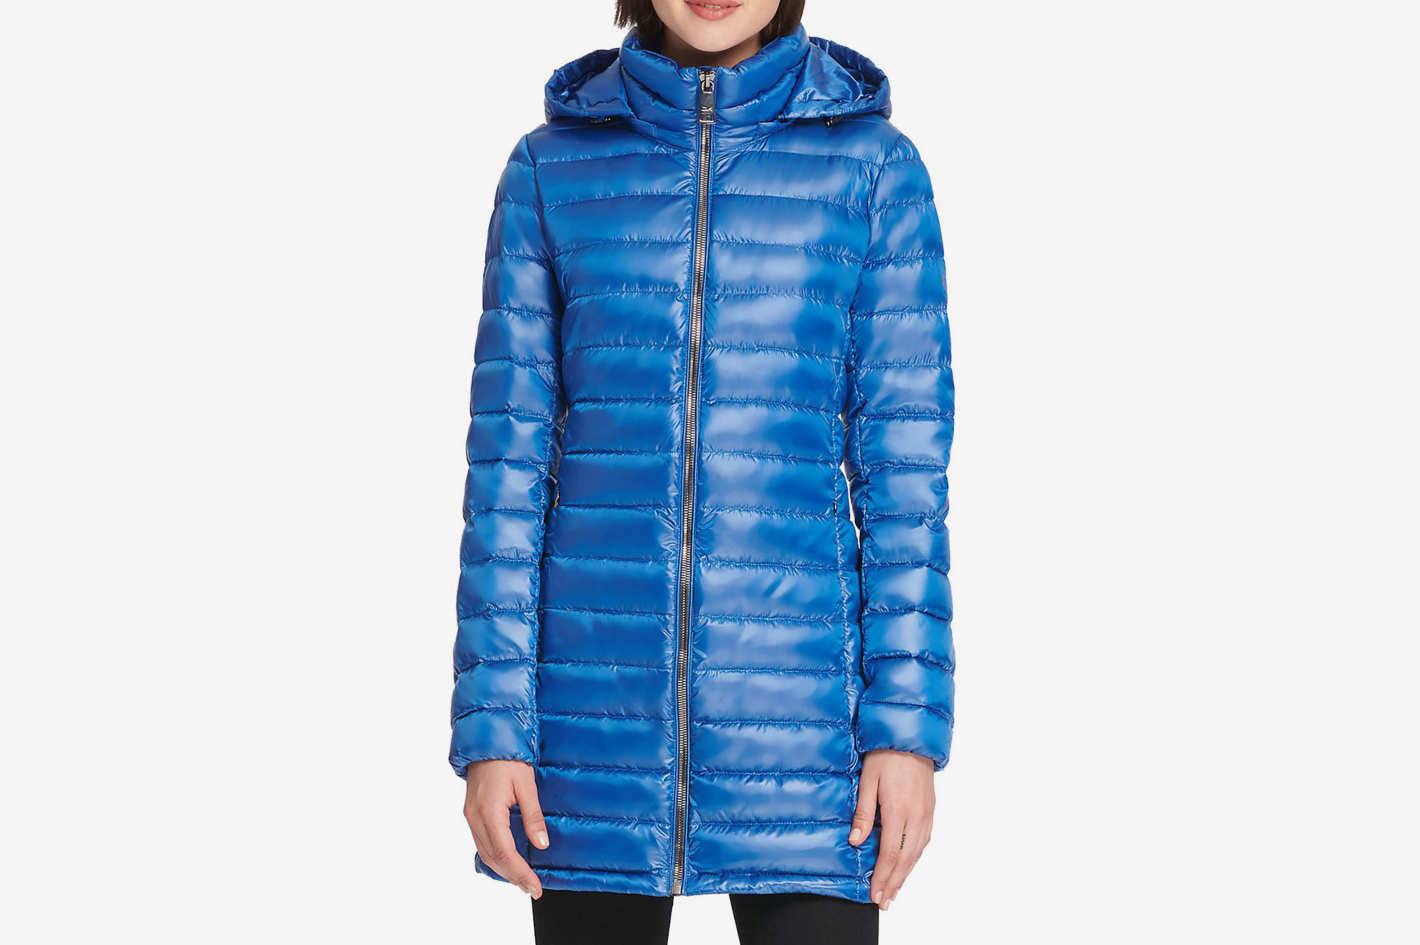 Donna Karan Packable Down Jacket